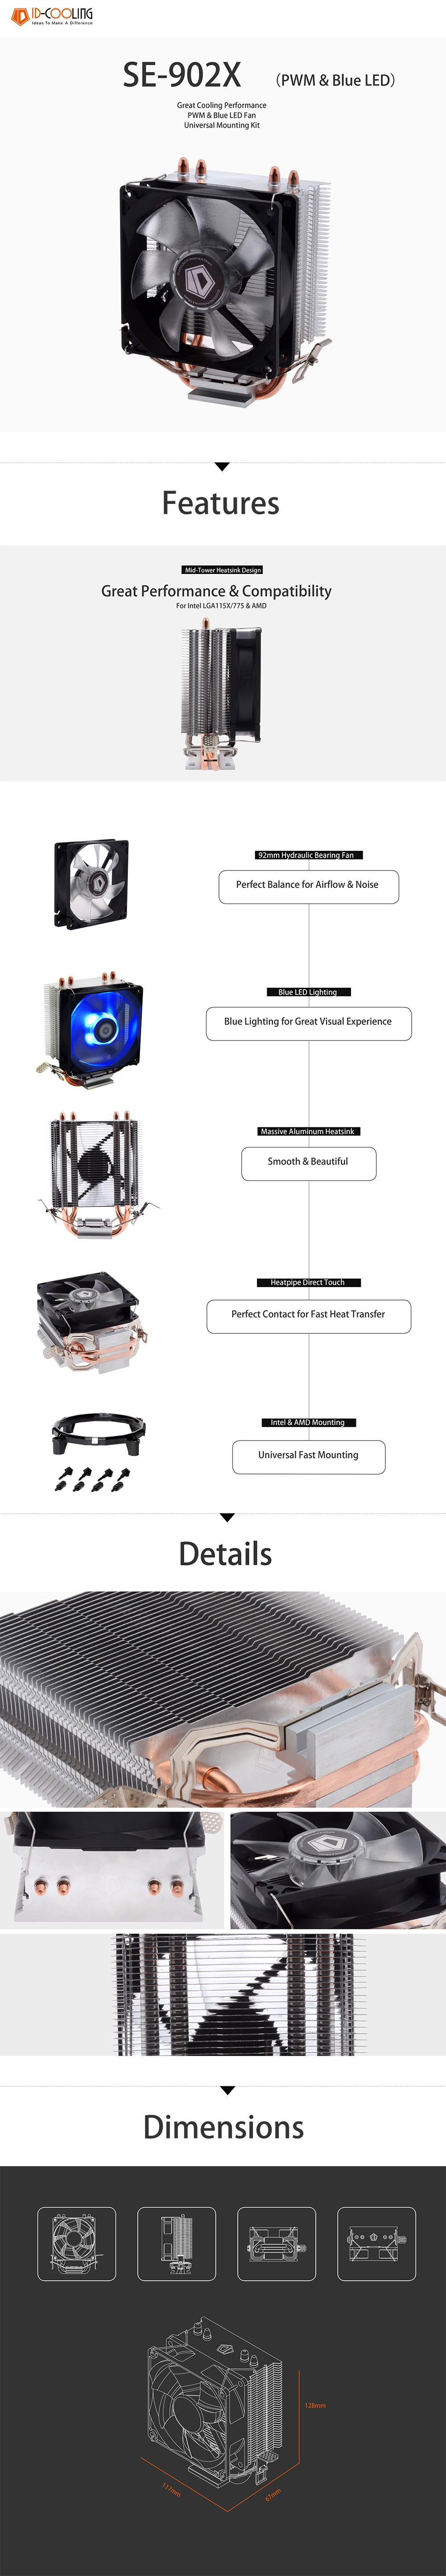 A large marketing image providing additional information about the product ID-COOLING Sweden Series SE-902X CPU Cooler - Additional alt info not provided